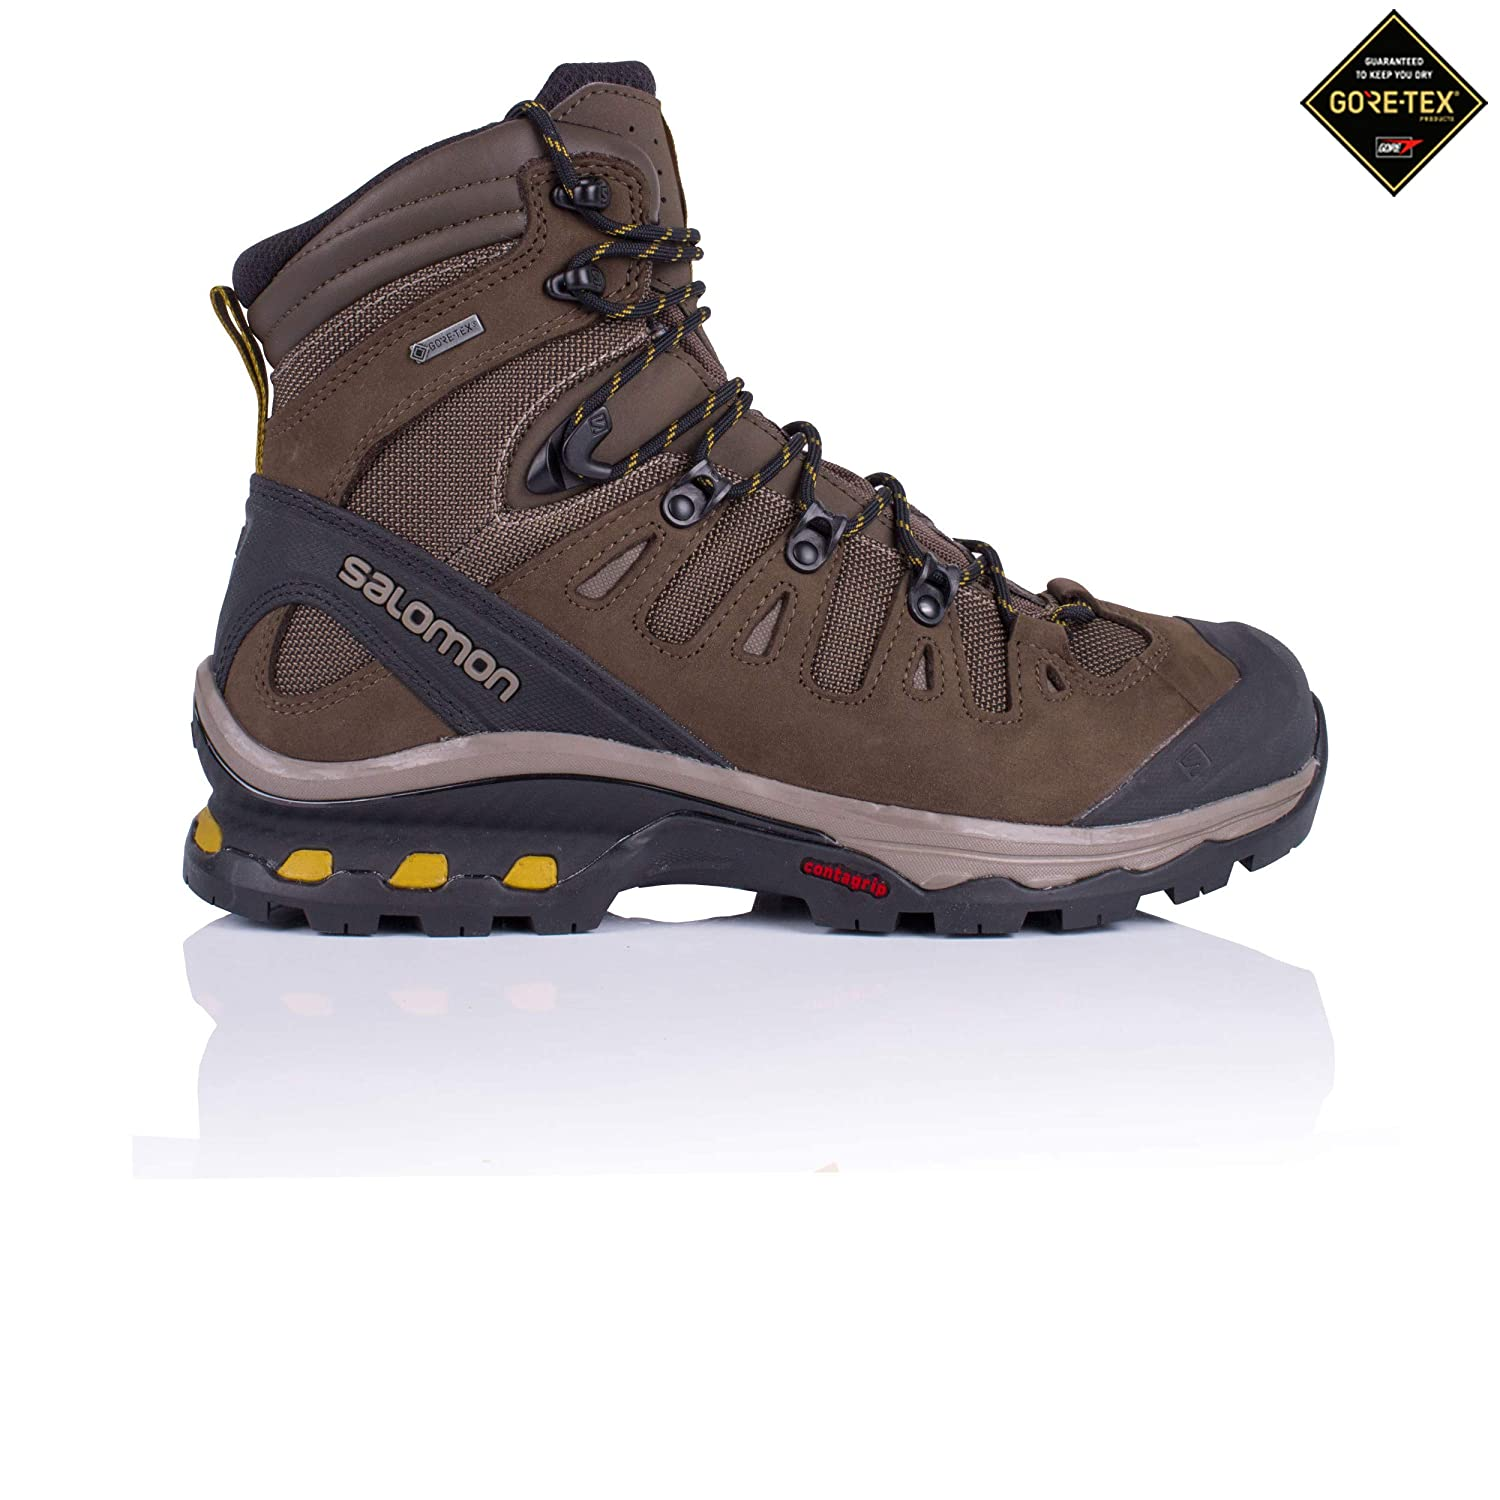 Salomon Men's Quest 4d 3 GTX Backpacking Boots 402455